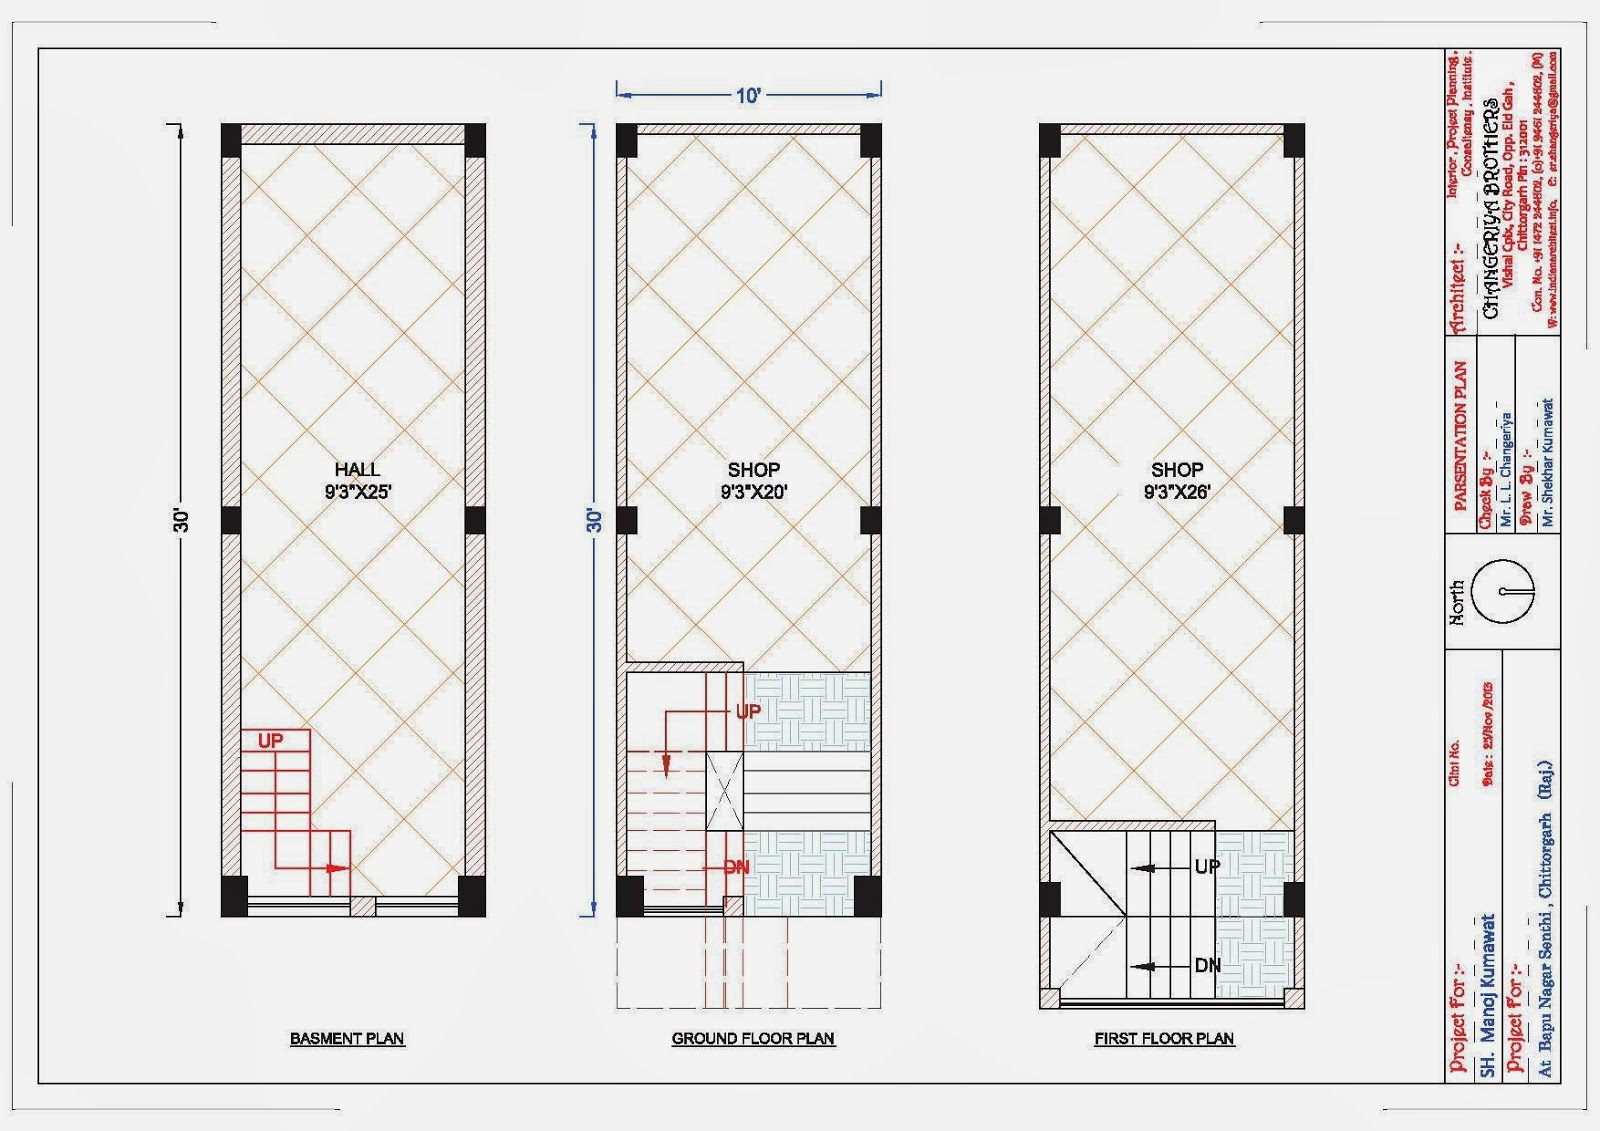 10x30 complex shop plan for mr manoj kumawat indian for Shop house plans